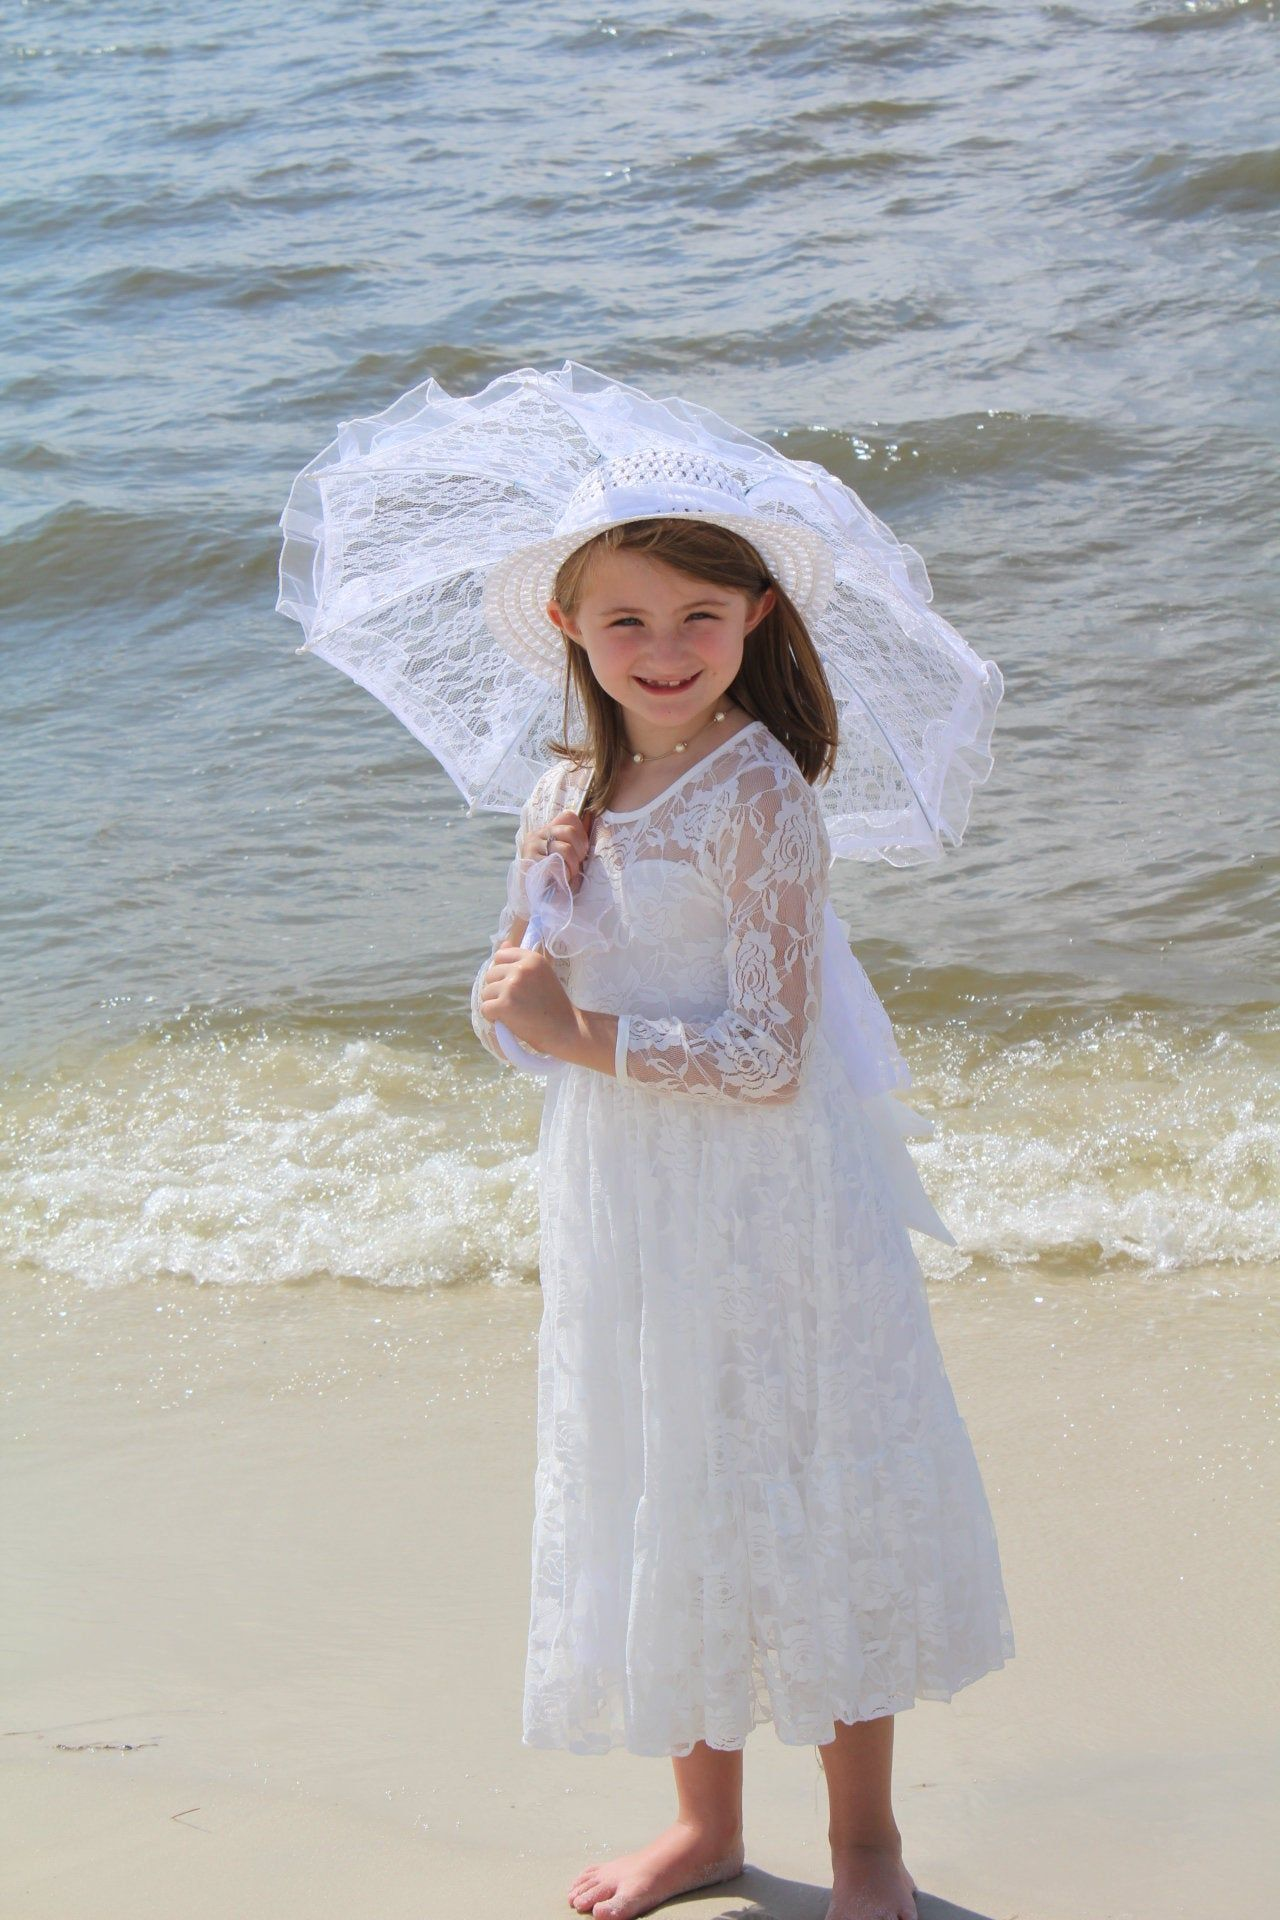 Handmade Lace Dress Girls Toddlers Size 4 5t White Long Lace Sleeves Ready To Ship Free Shipping Beach Photos Girls Dresses Handmade Dresses Childrens Clothes [ 1920 x 1280 Pixel ]